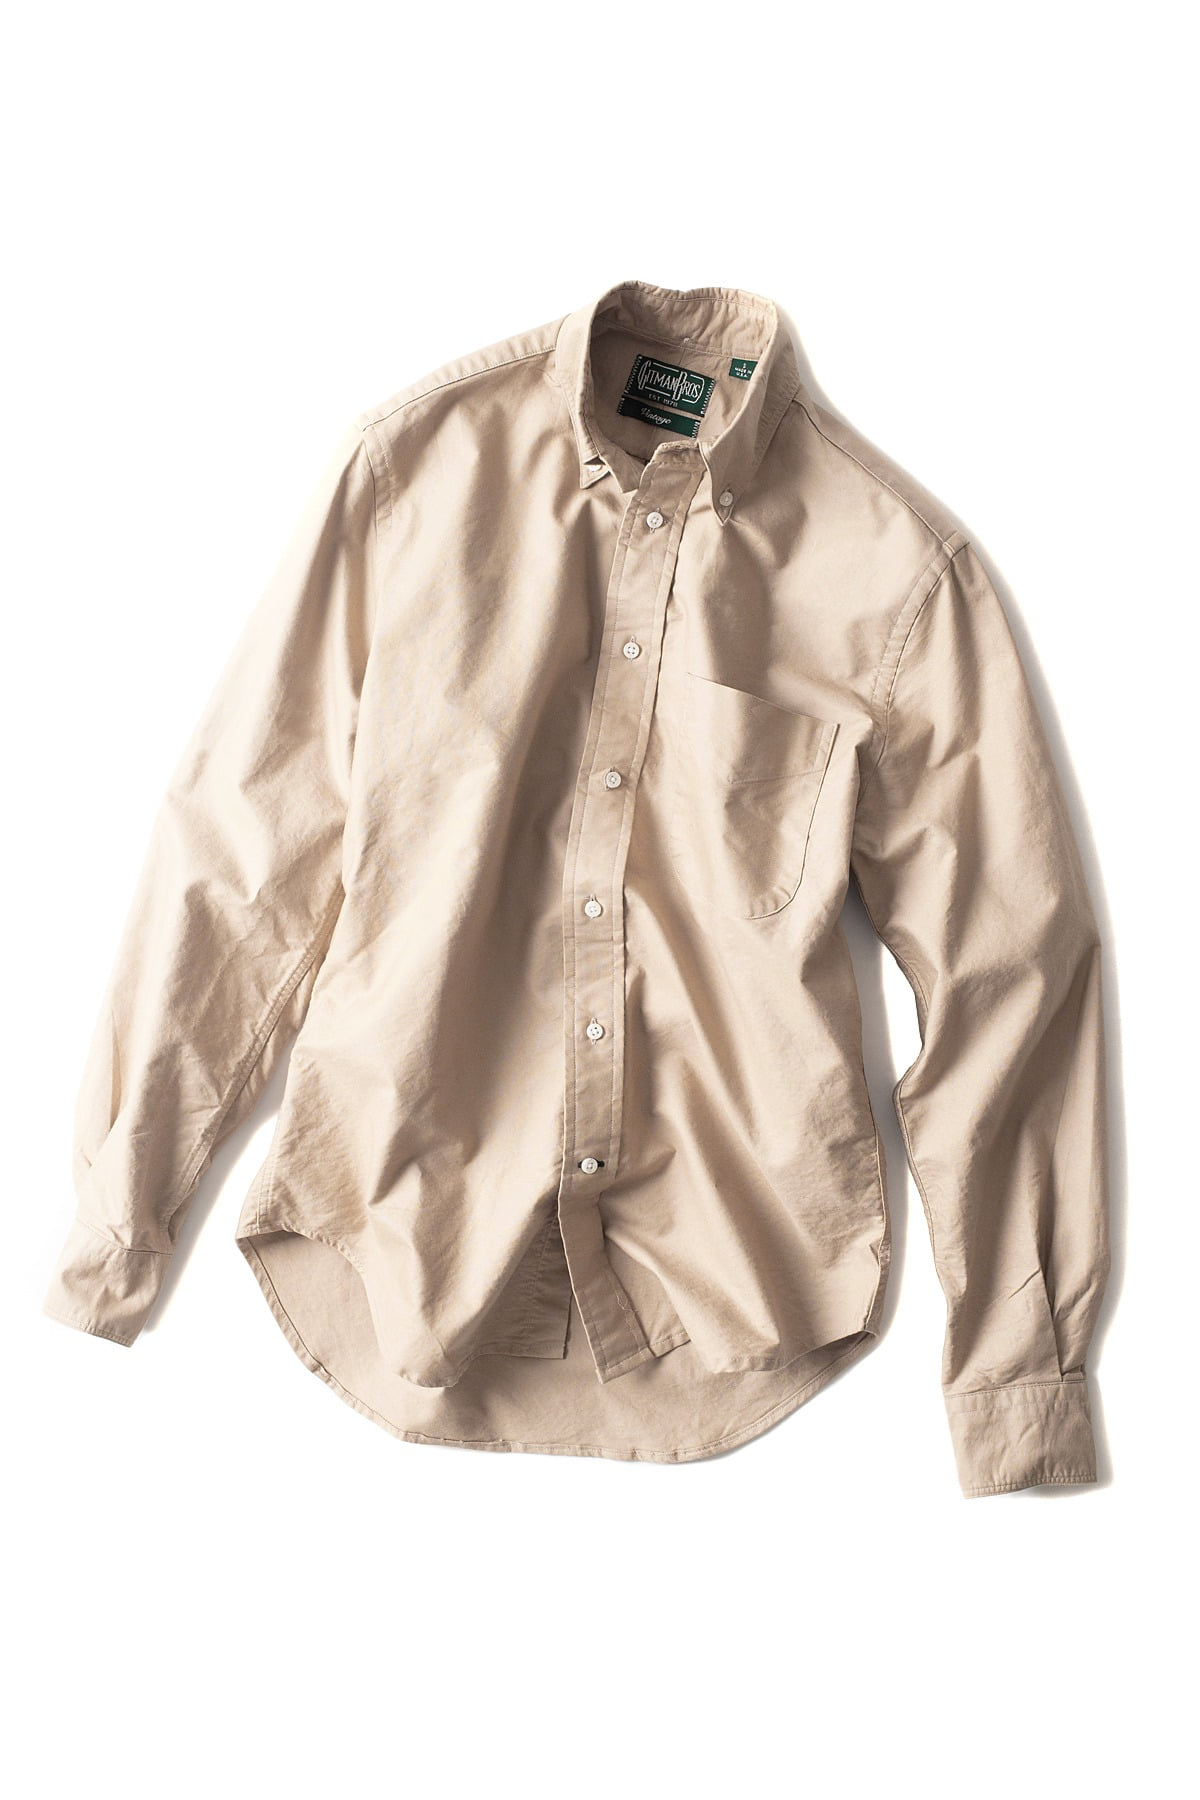 GITMANBROS : Vintage Button Down Shirt (Tan)